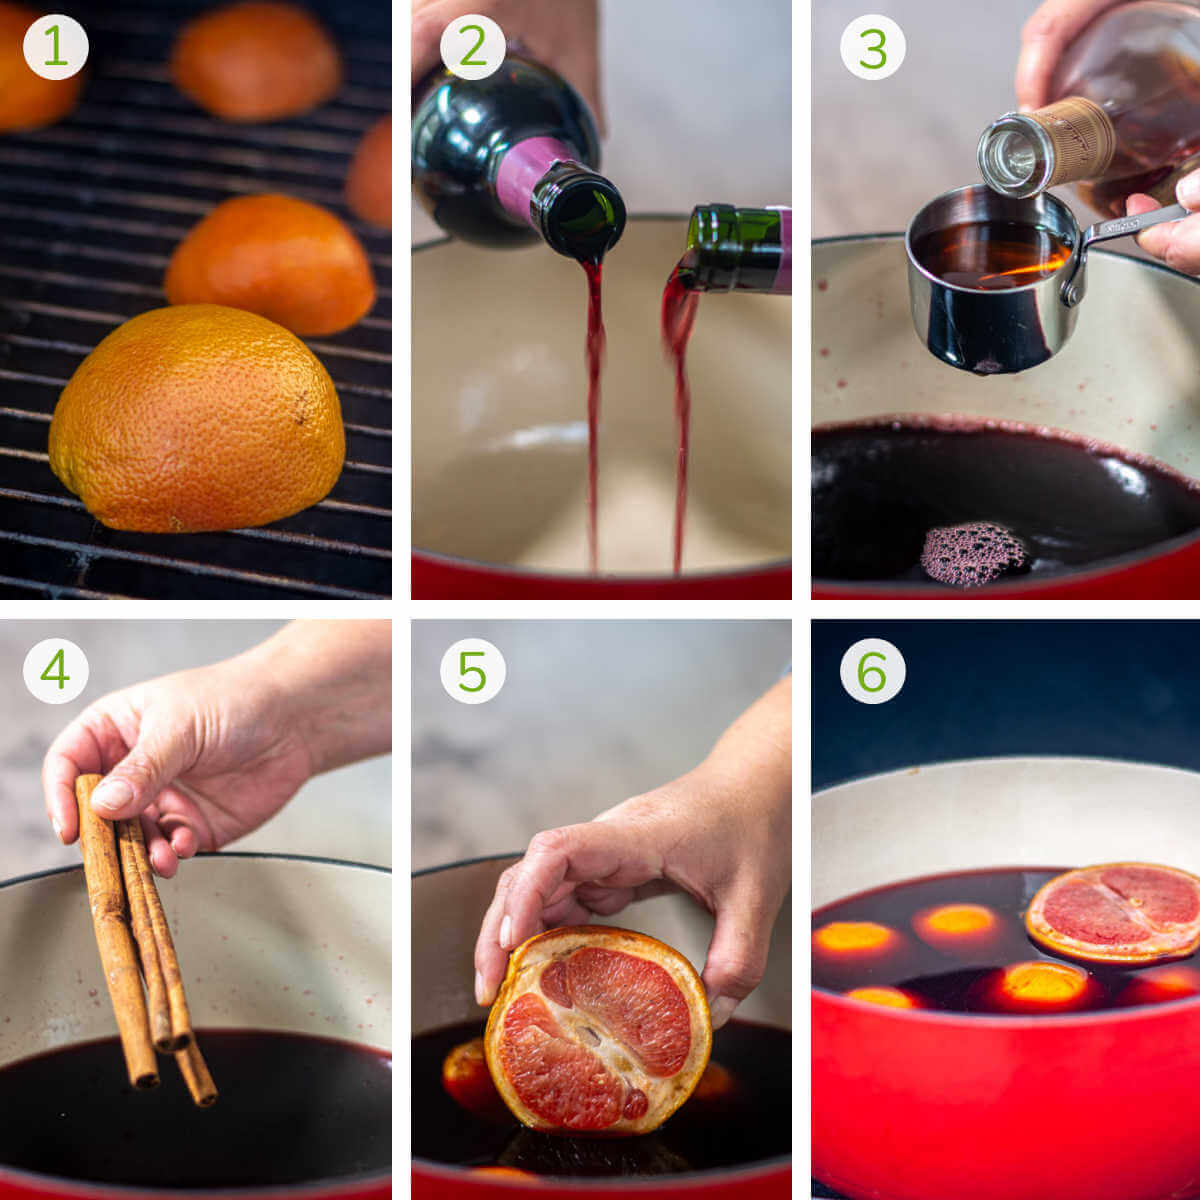 process shots showing the smoking of the citrus, adding the wine and cognac to the dutch oven with spices.